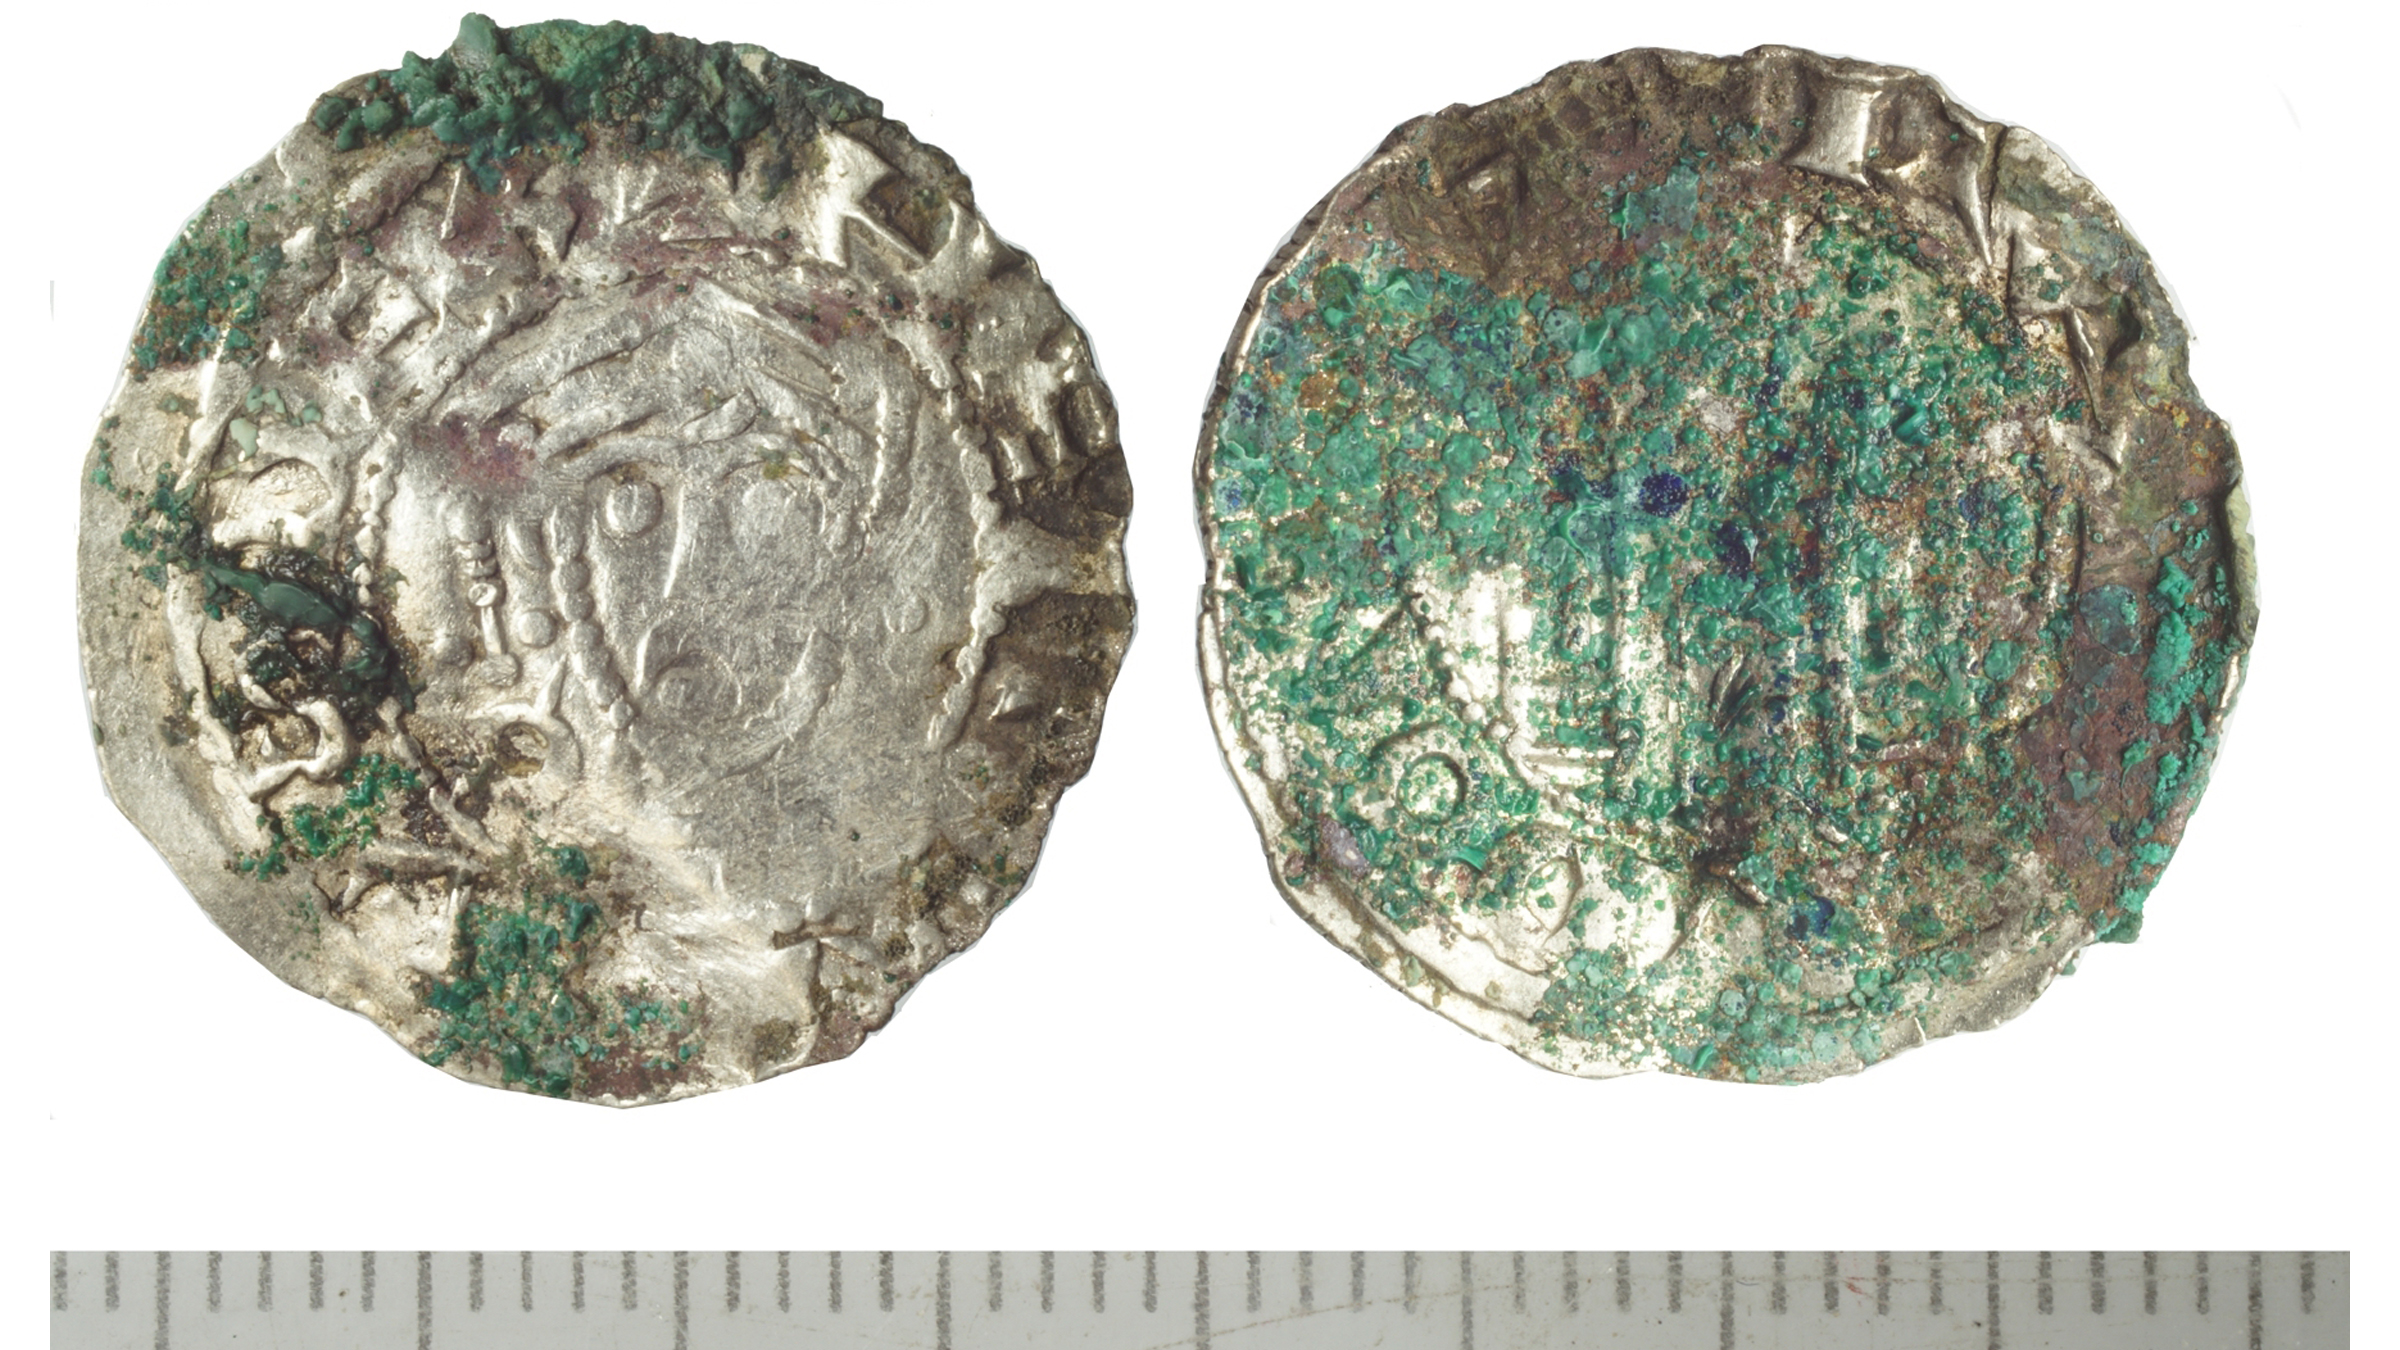 A denarius (silver coin) of Henry III, King of Germany